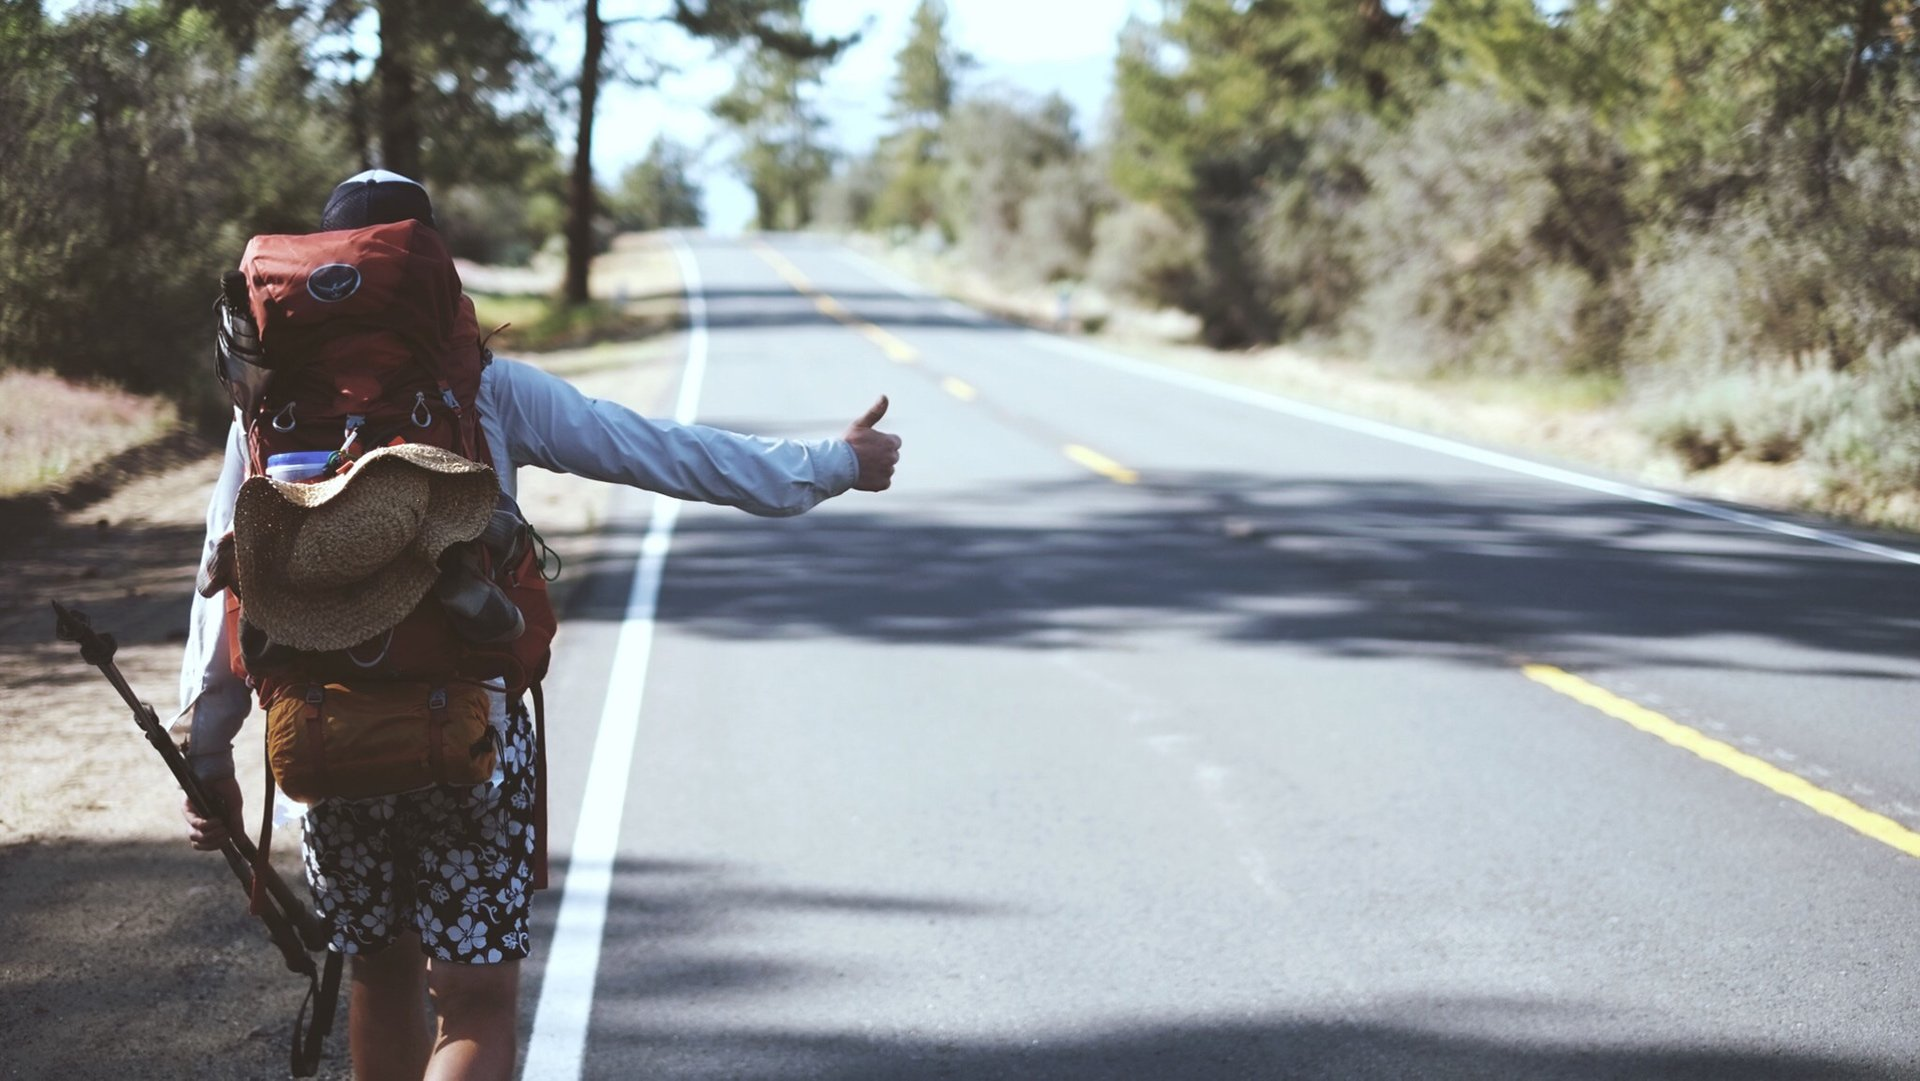 PCT hiker hitchhiking